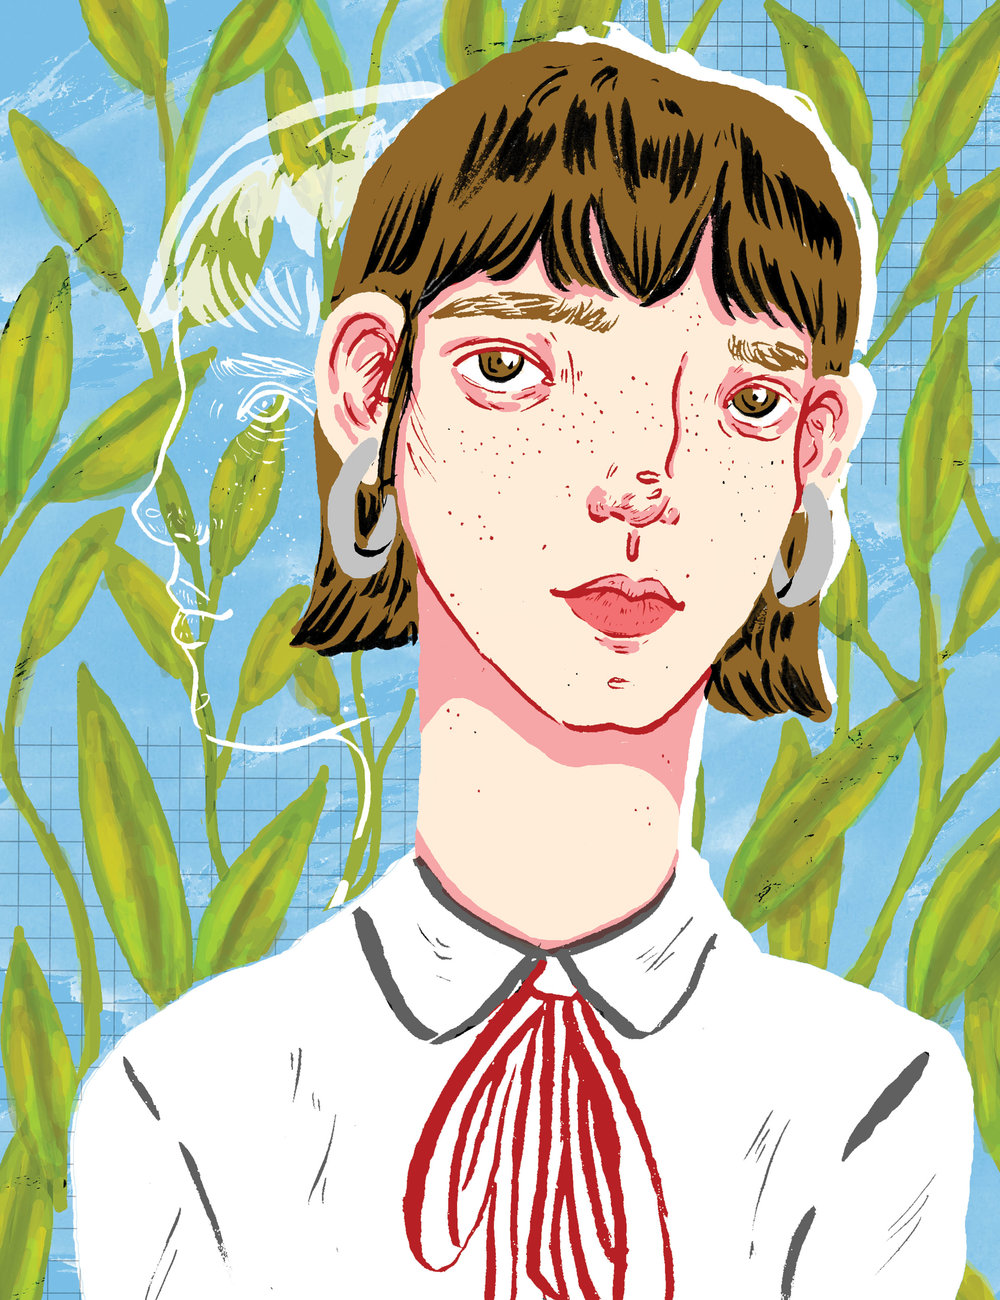 "Illustration by Cecily Goff  ""For my whole life, my mental health, or somewhat lack of, has been a large part of my identity. No, I am not defined by my diagnosis but the way I feel and react to the world around me is a large part of who I am today, medical professionals just gave me a name for it. Some days I'm not sure if I'm 'me' and other days I'm not sure who 'me' is and if she really exists at all. Feeling trapped in overgrowth, I'm not sure if I'm growing as a person or if my fears and problems are growing and I'm simply accompanying them along the way,"" says Cecily about this illustration."